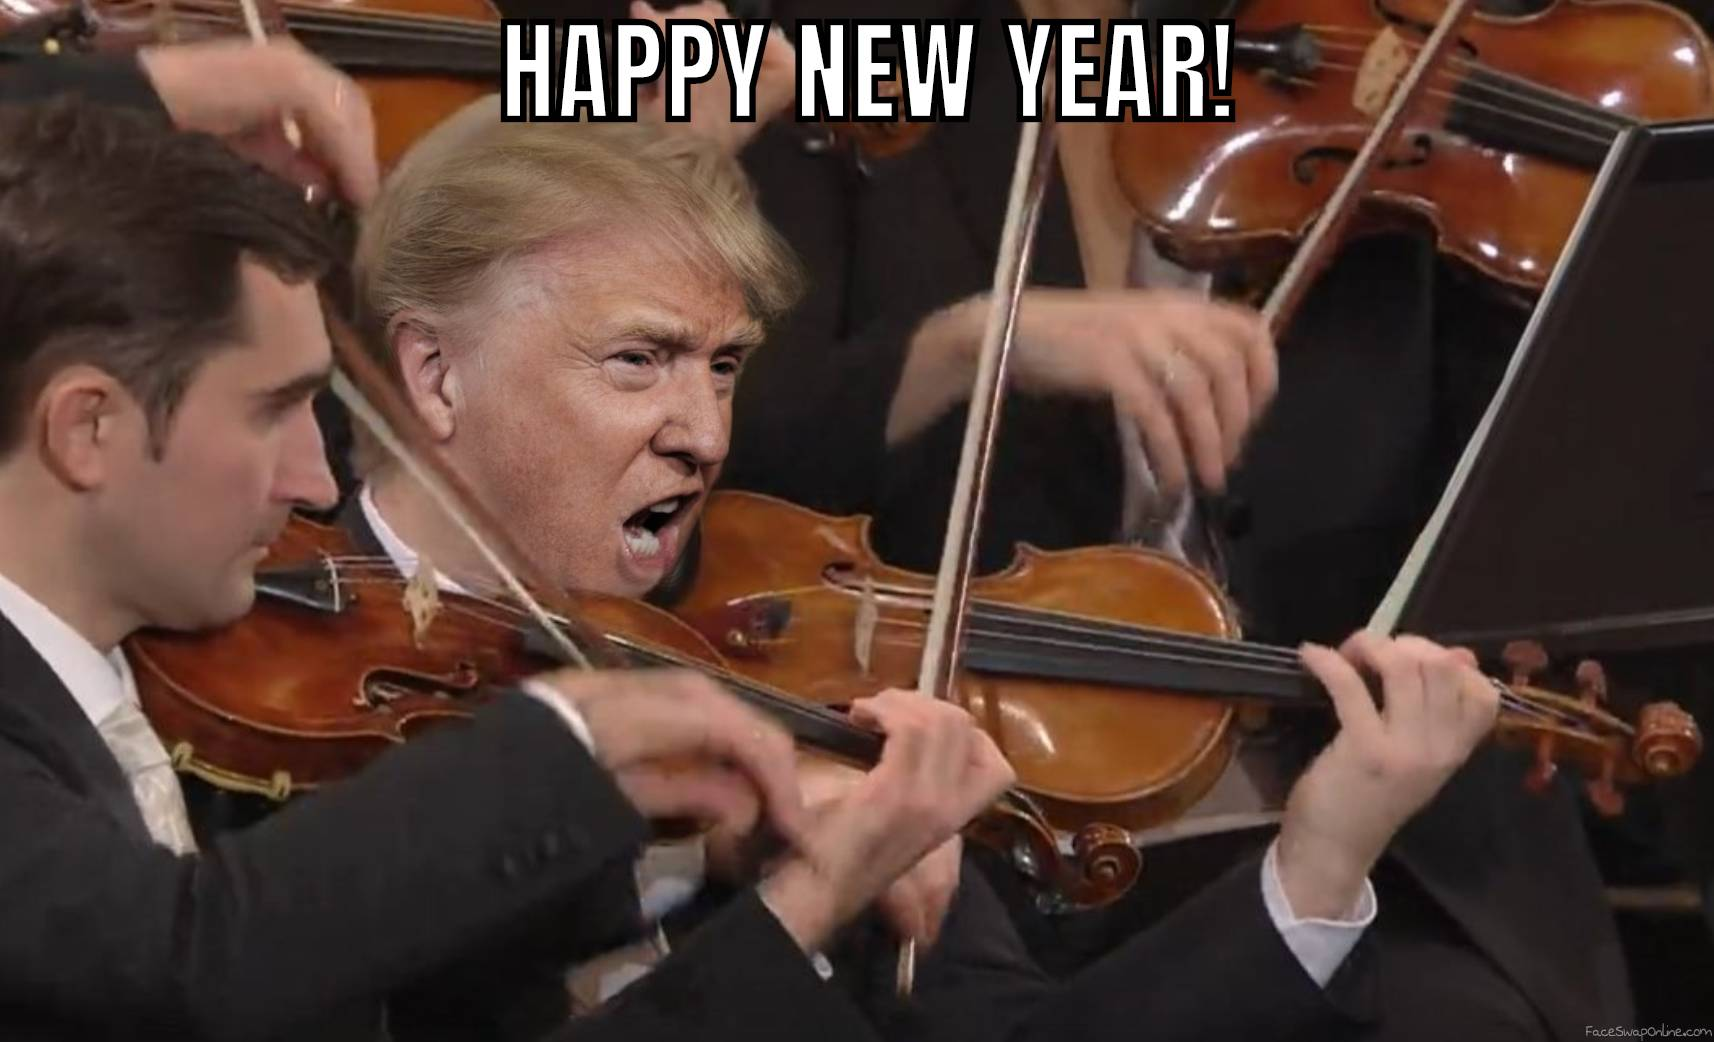 Trump playing the violin in an orchestra